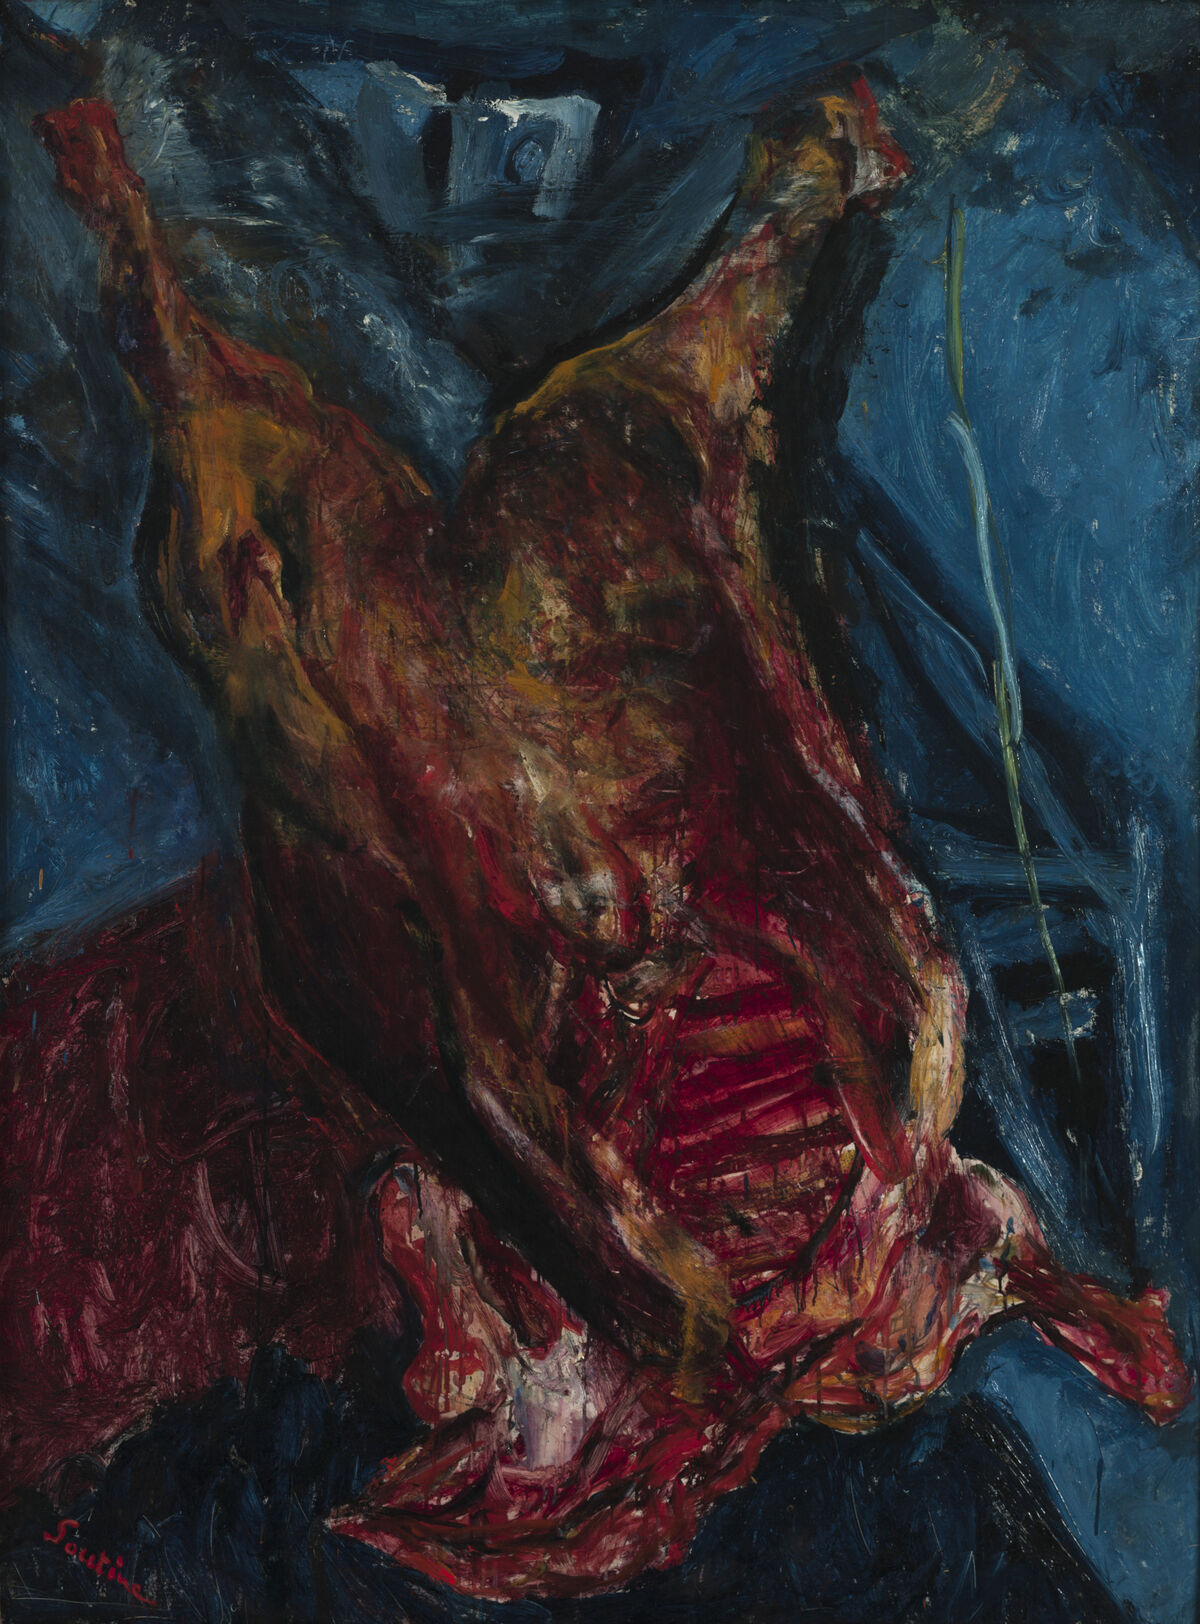 Chaim Soutine, Carcass of Beef, c. 1925. © Artists Rights Society (ARS), New York. Courtesy of the Albright-Knox Art Gallery, Buffalo, New York and The Jewish Museum.